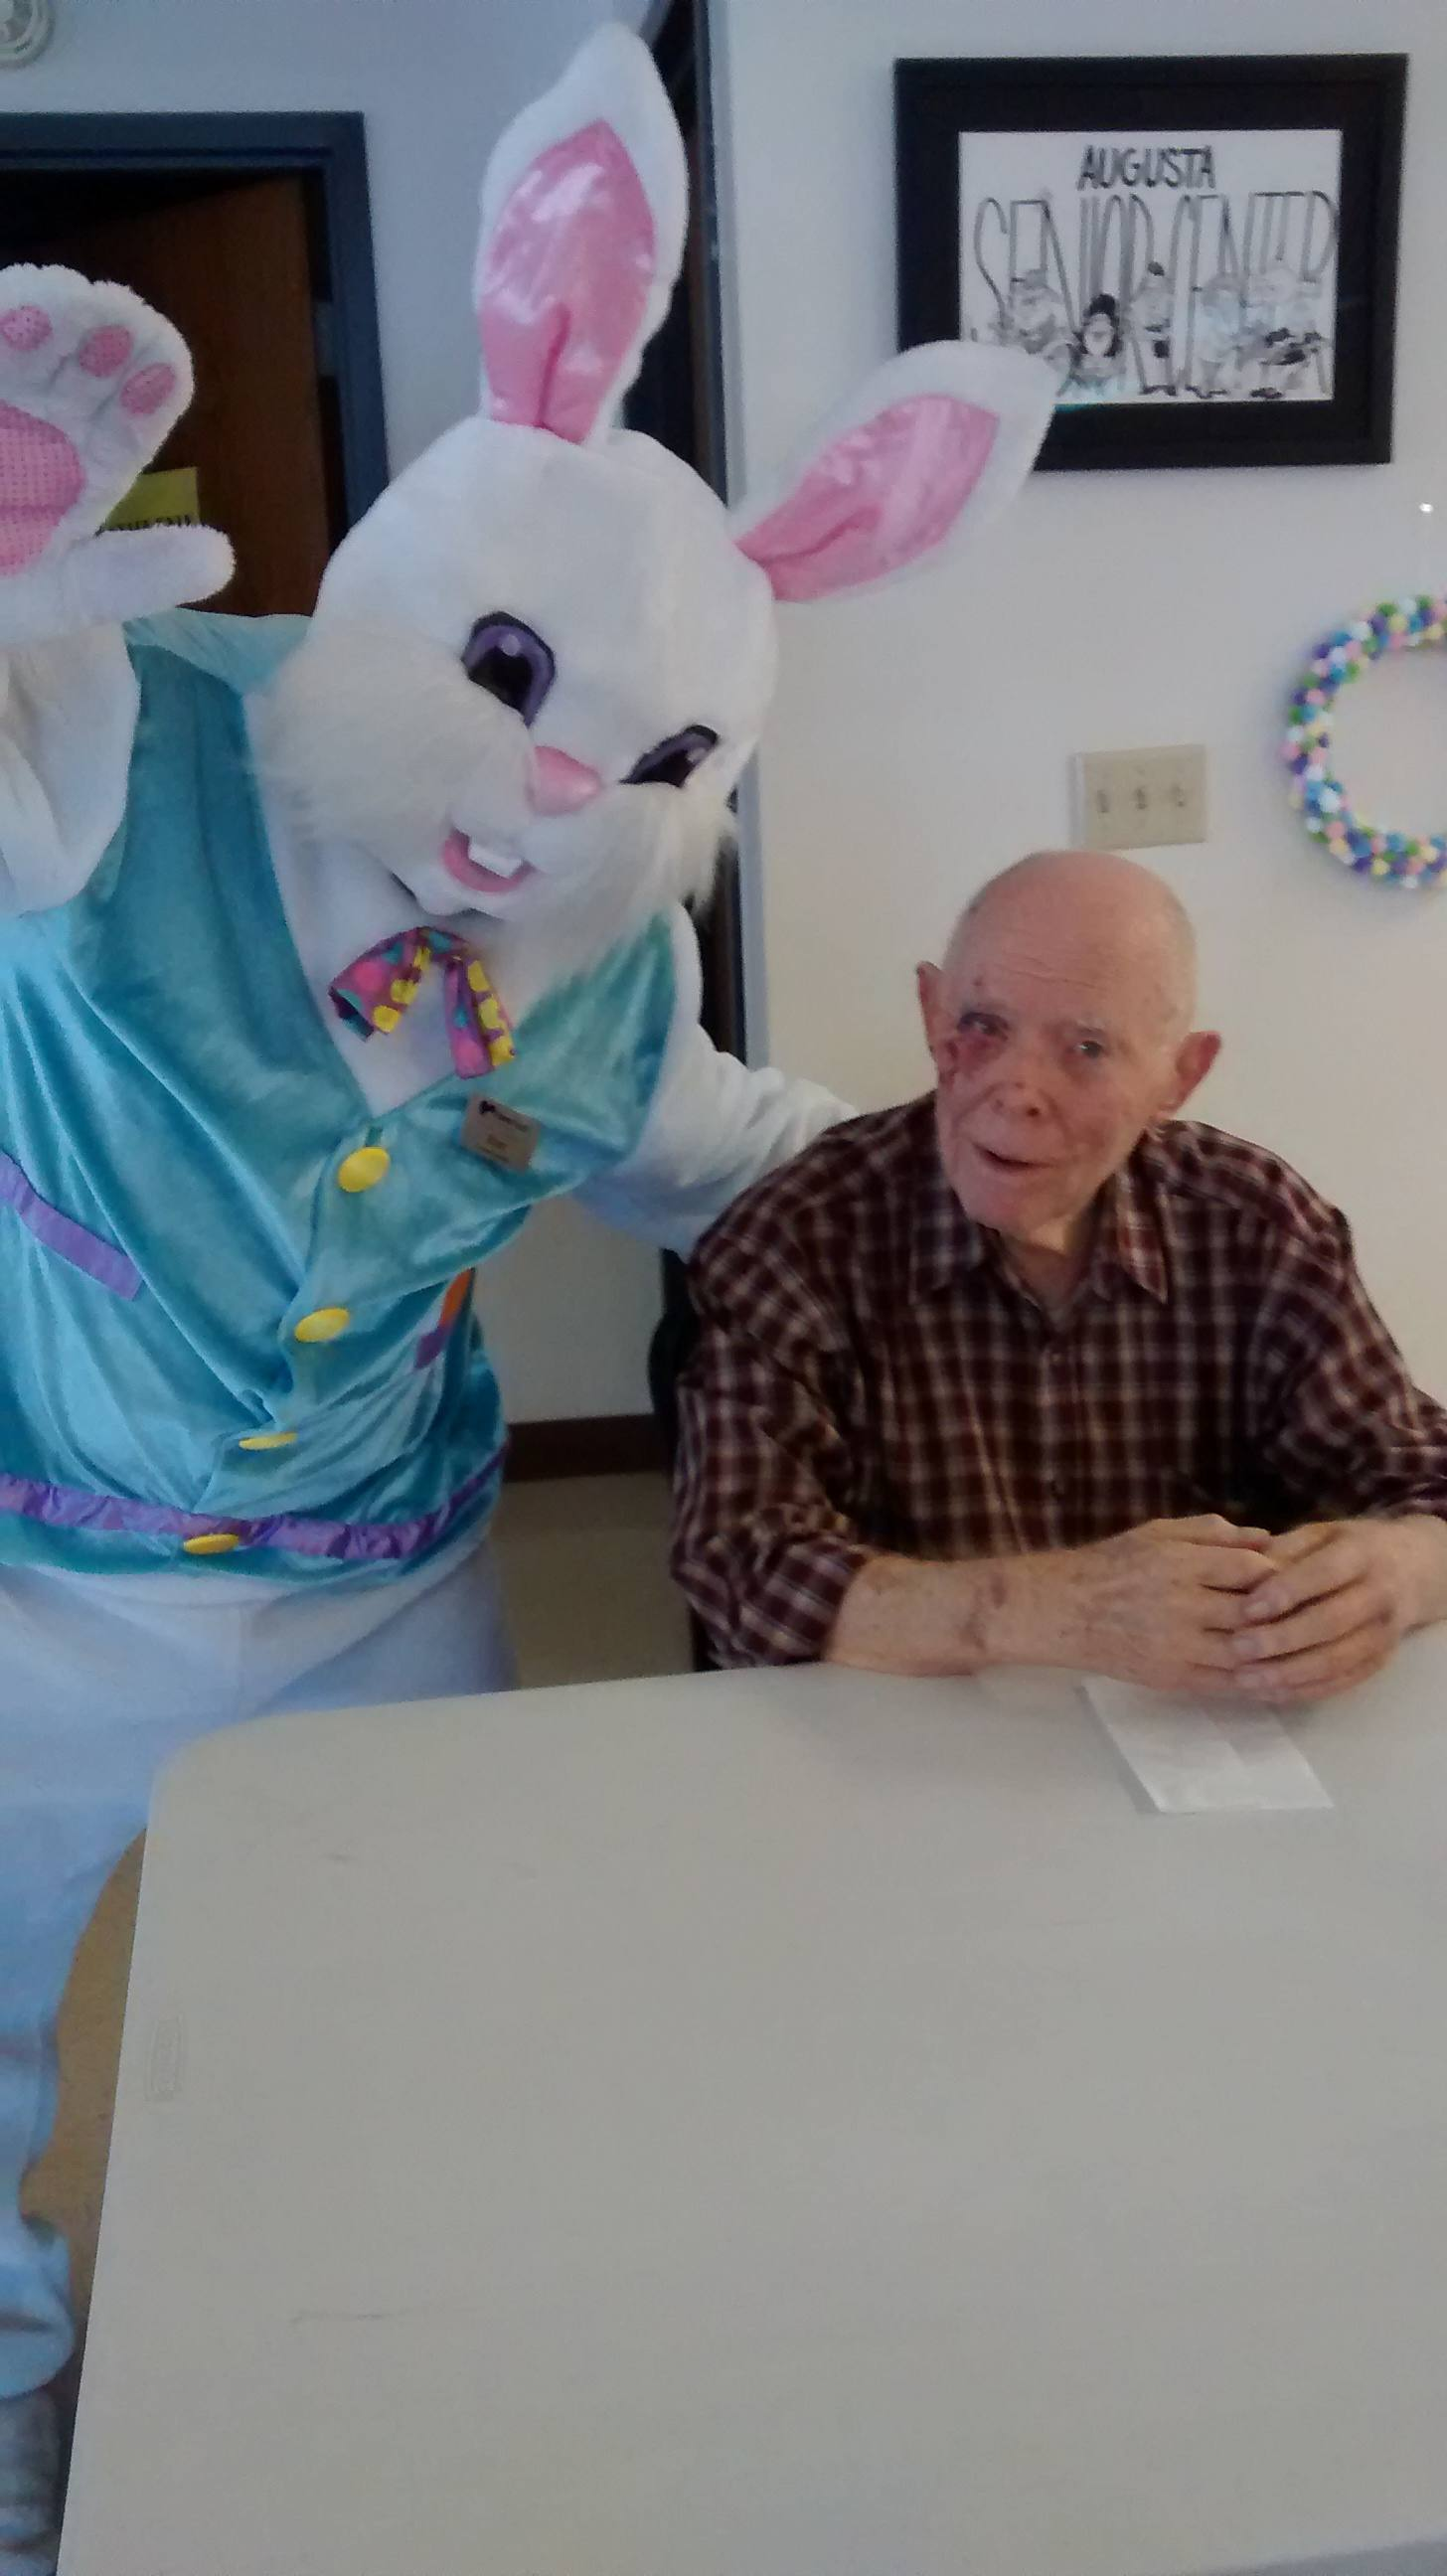 Haskell & Easter bunny